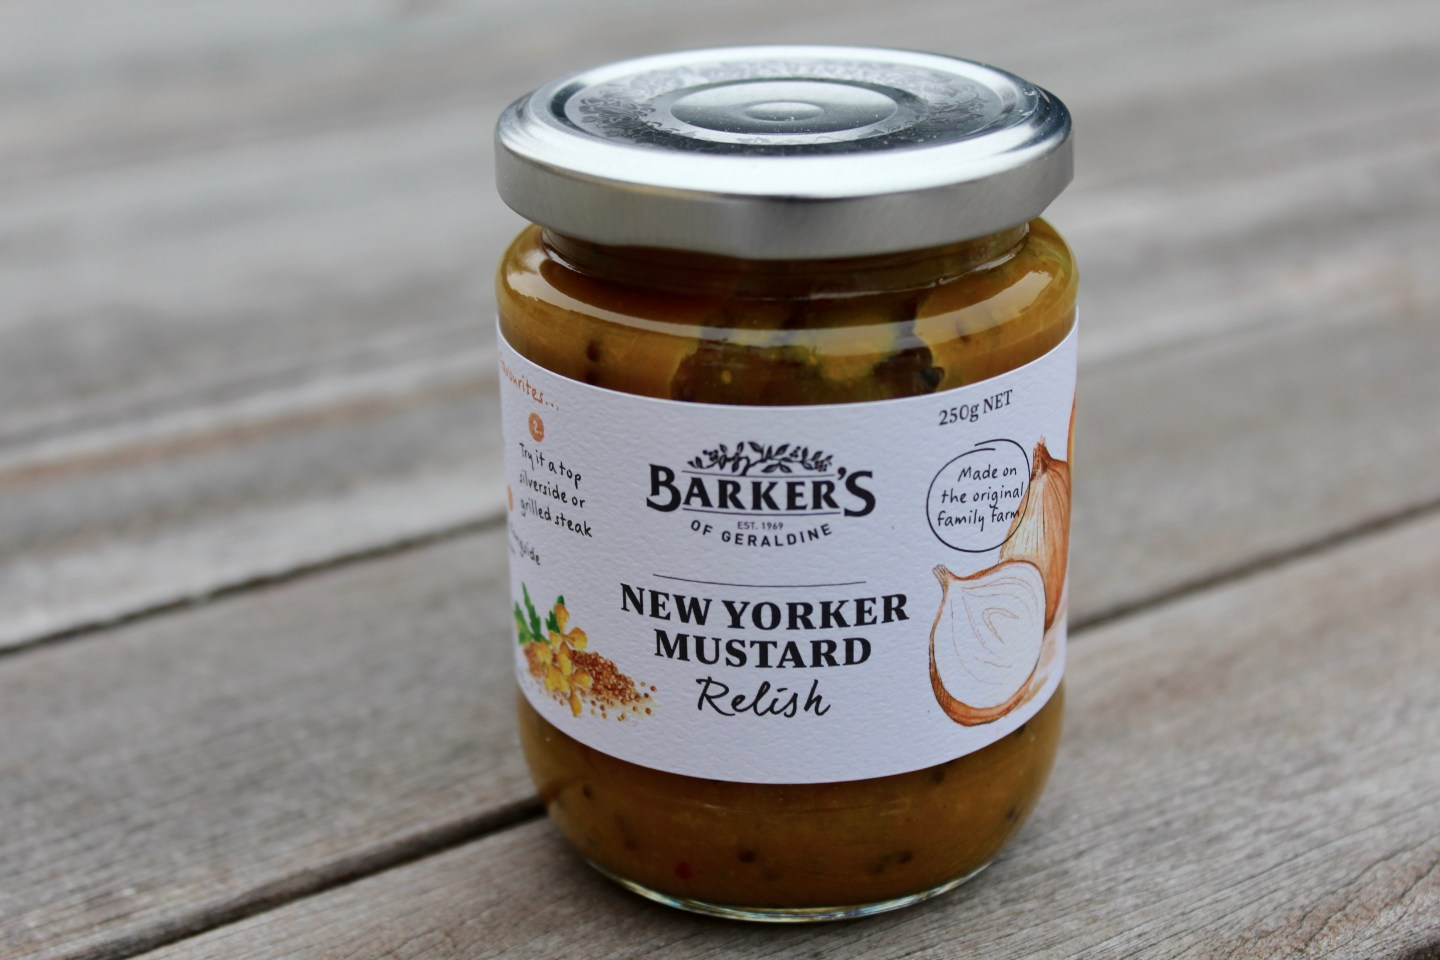 Barkers New Yorker Mustard Relish